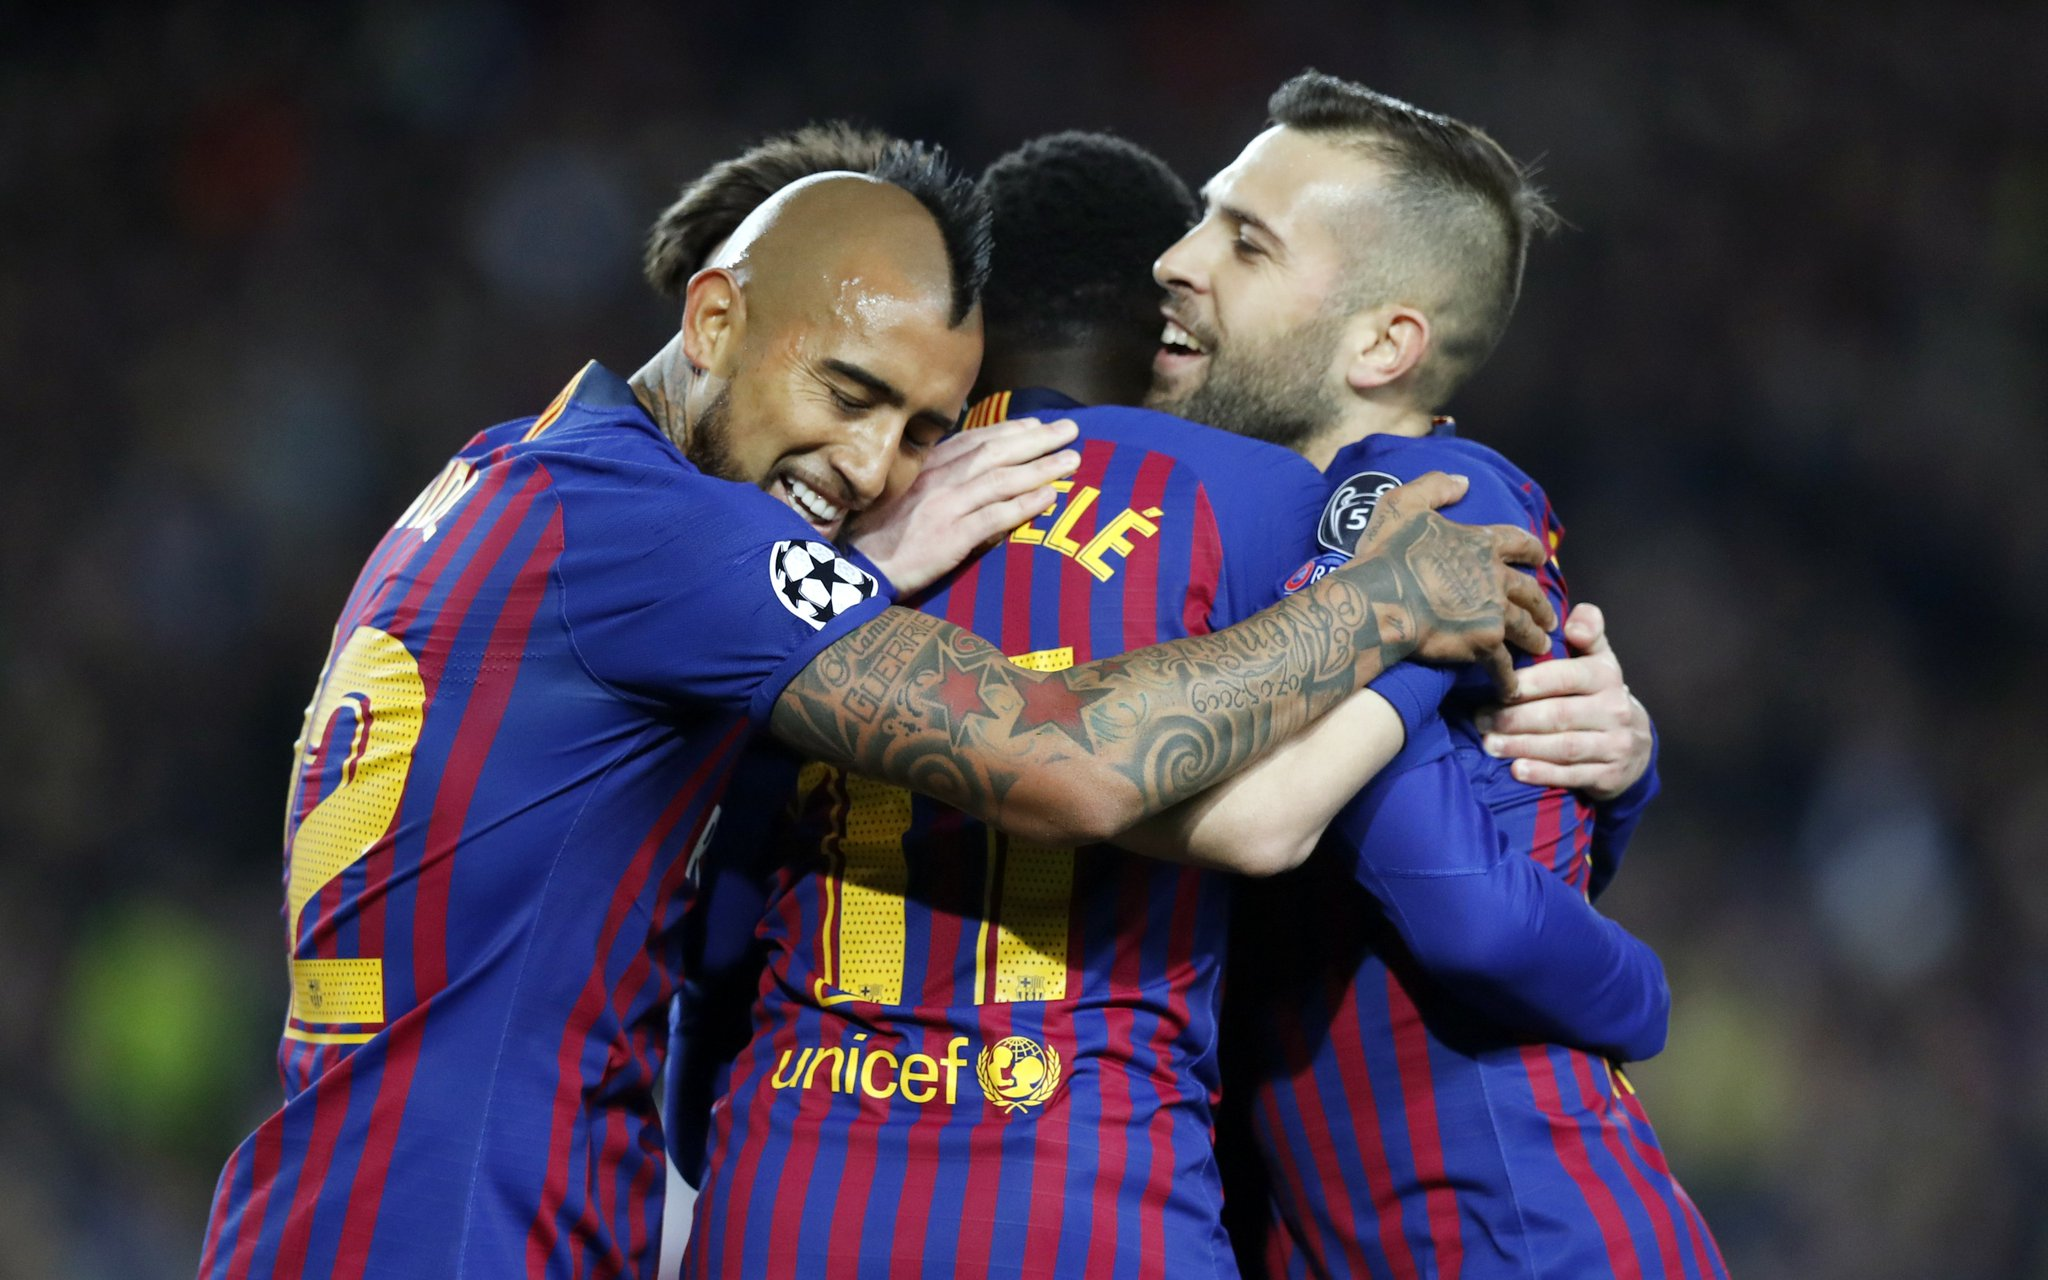 When YOUR goal wraps up the game, your teammates wrap YOU up.  #BarçaOL https://t.co/mtVzA644Rd